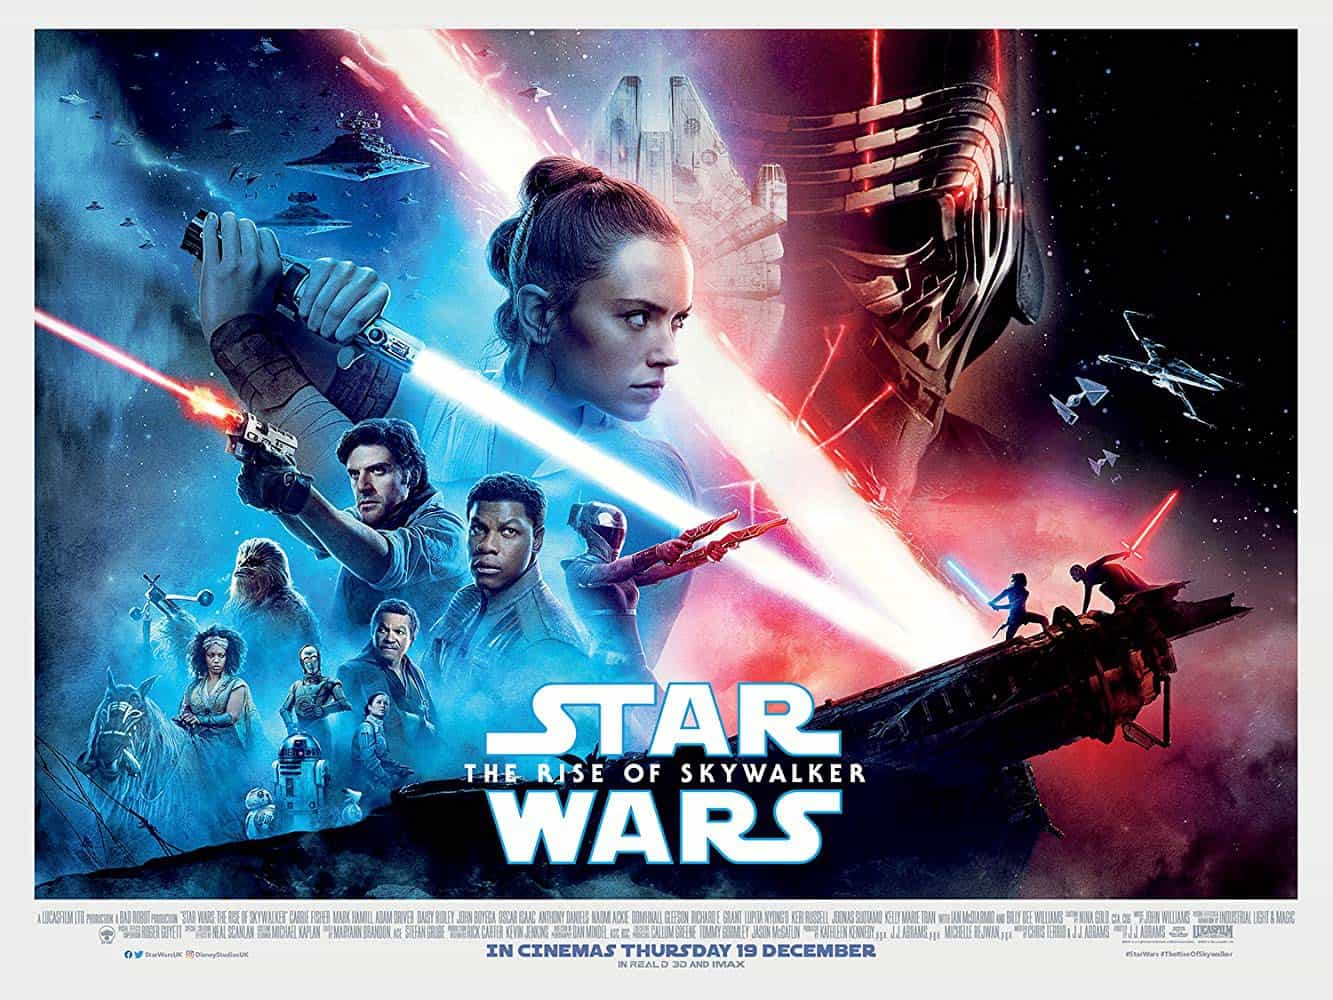 Star Wars Episode IX – The Rise of Skywalker